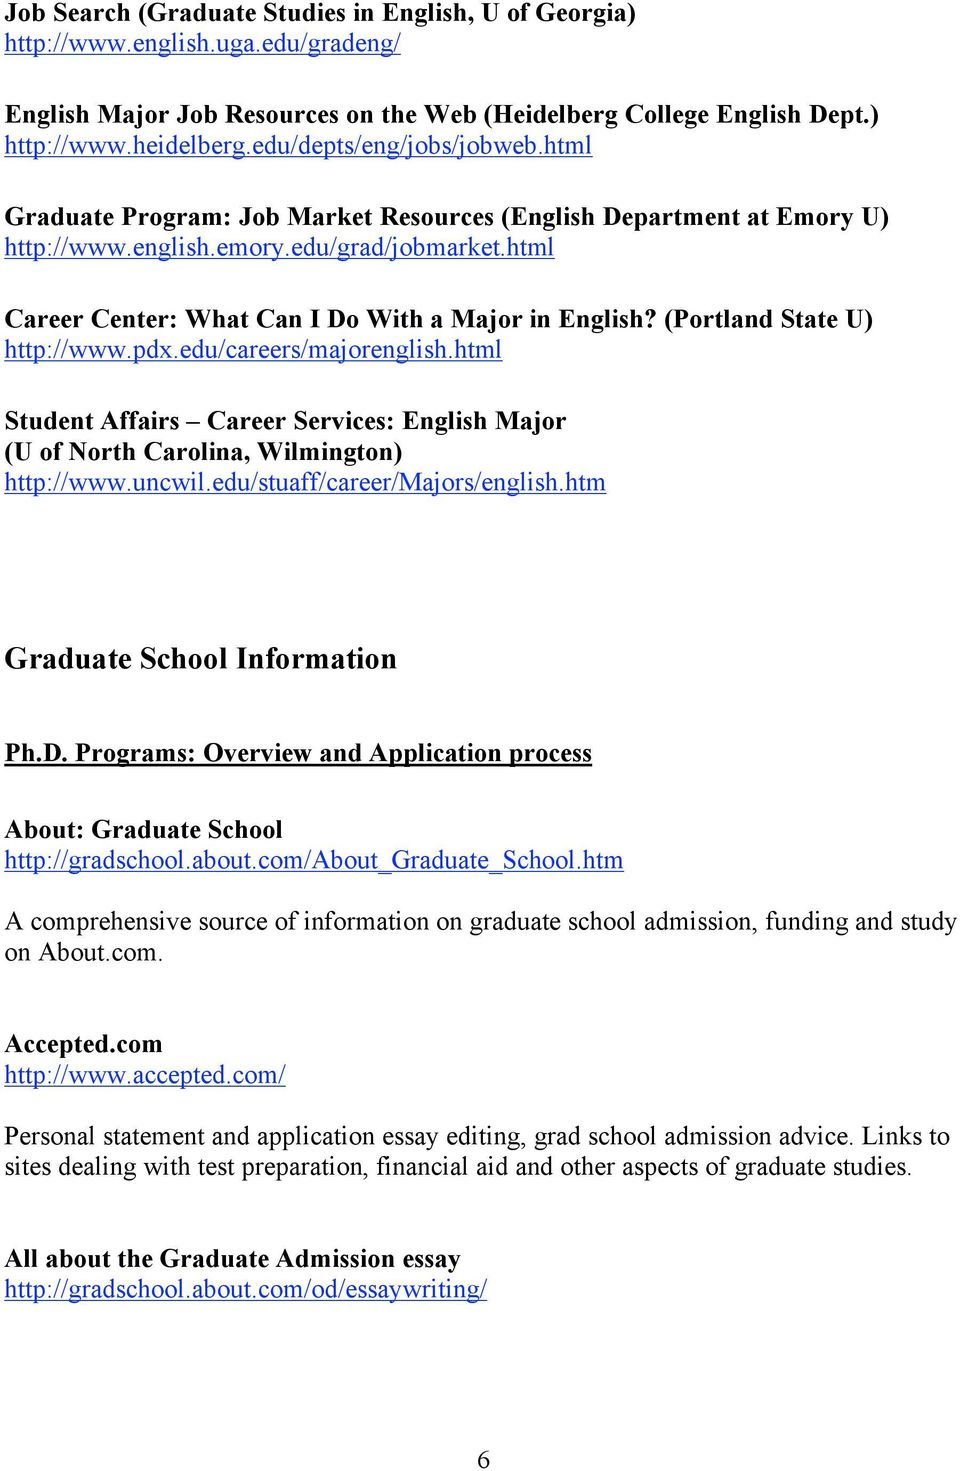 html Career Center: What Can I Do With a Major in English? (Portland State U) http://www.pdx.edu/careers/majorenglish.